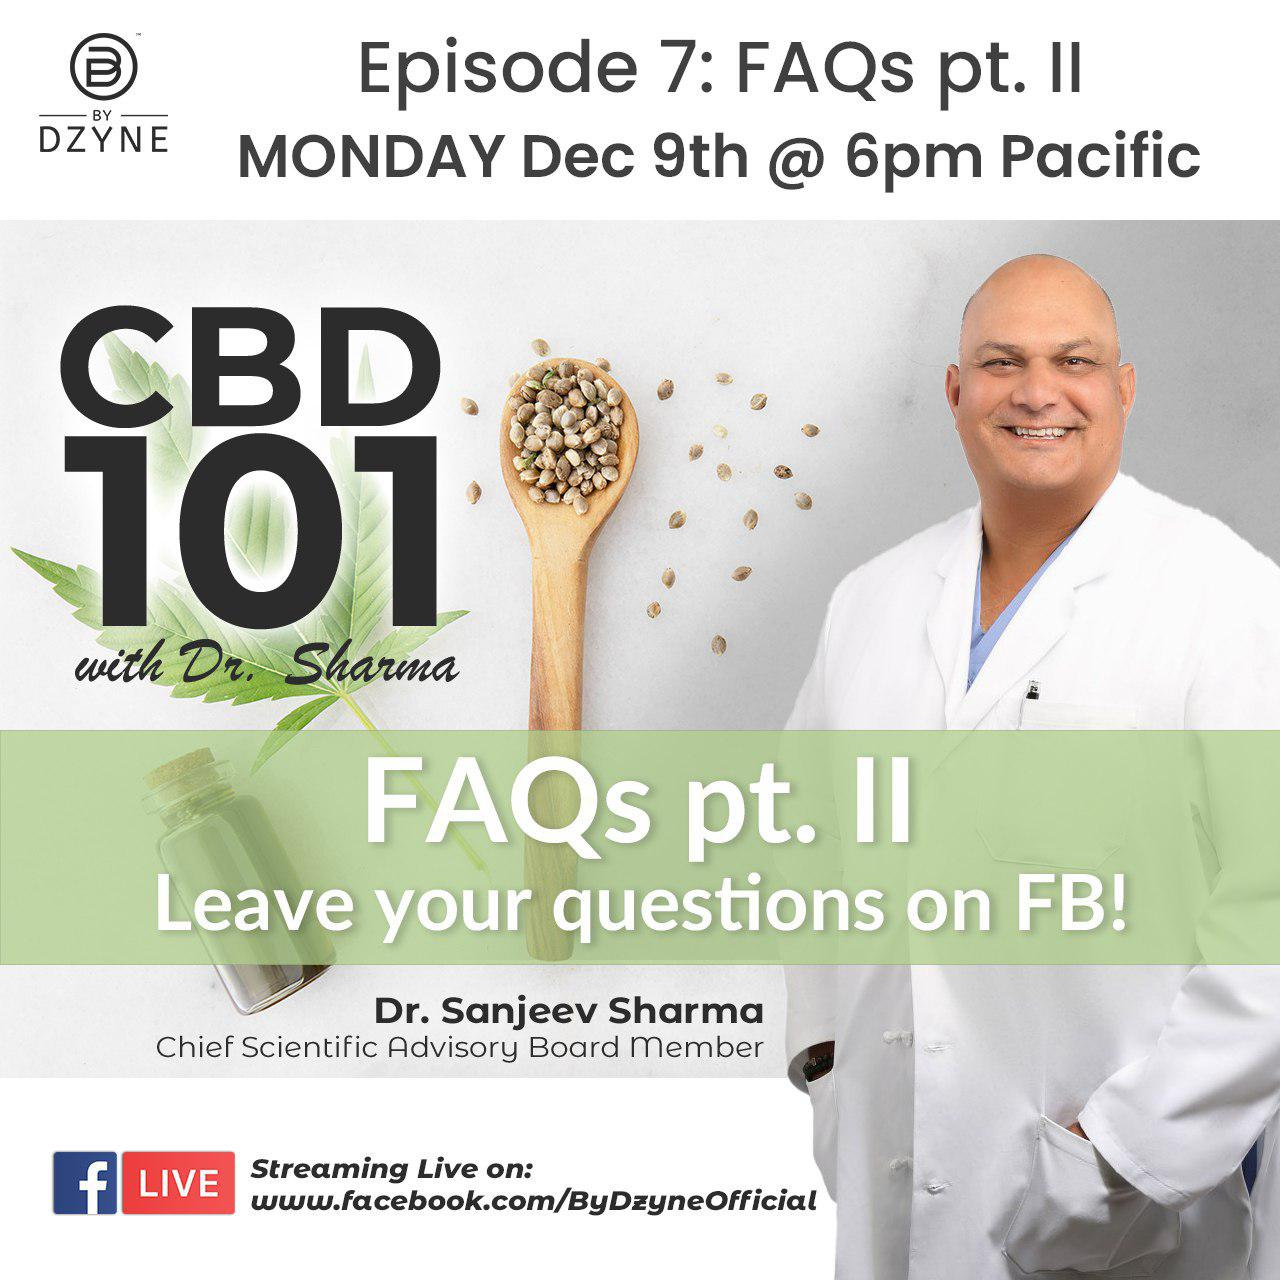 RECAP: Episode 7 – CBD 101 Frequently Asked Questions Pt II